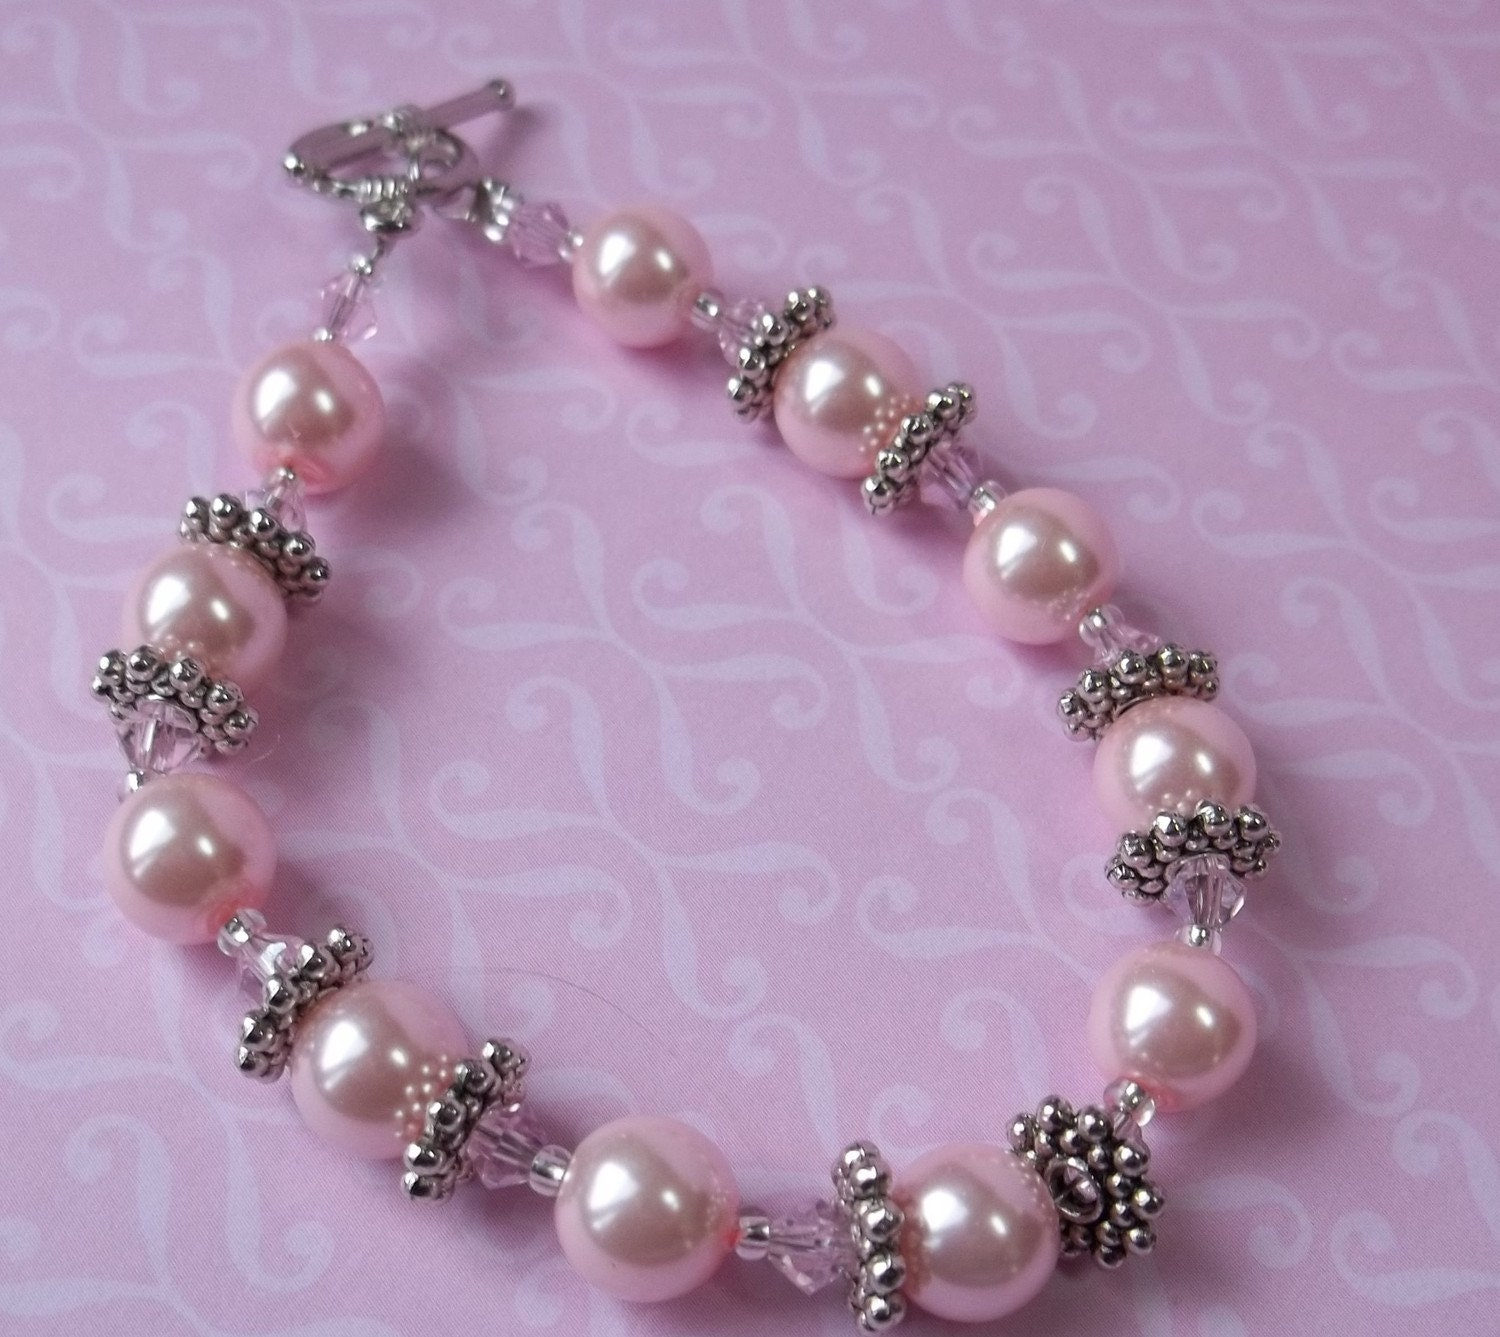 Pink and Chic Pearl Bracelet